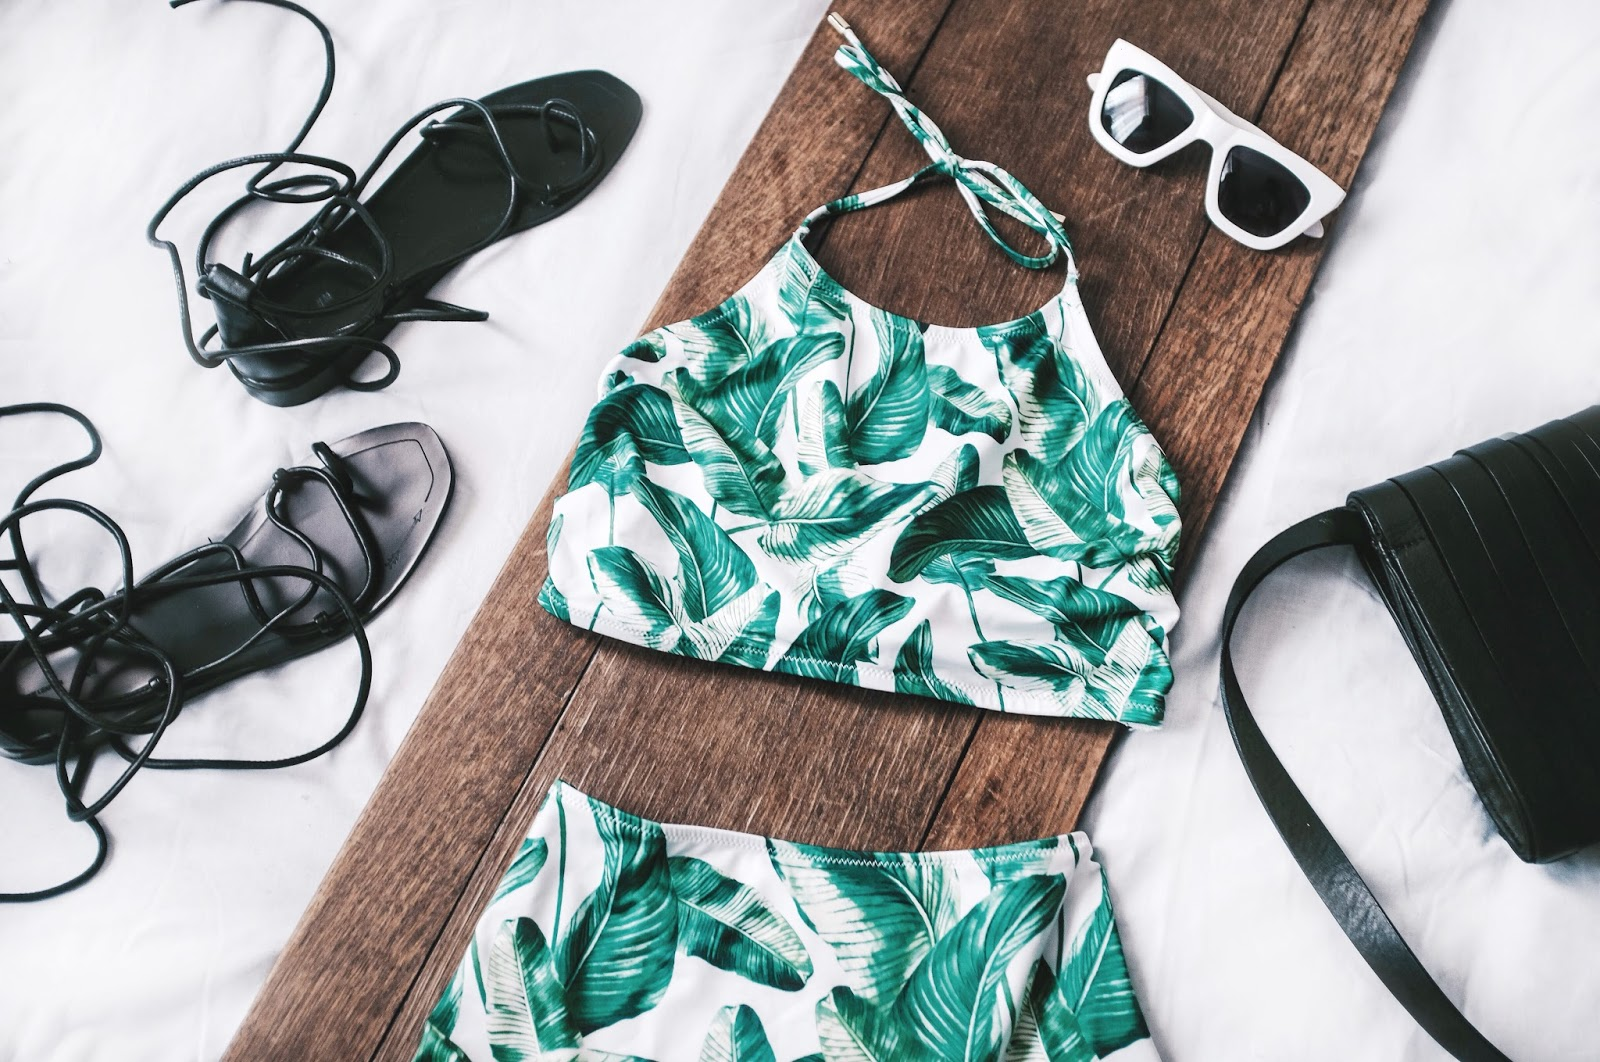 Leather Tie Up H&M Sandals Green Bana Leaf Print High Waisted Bikini